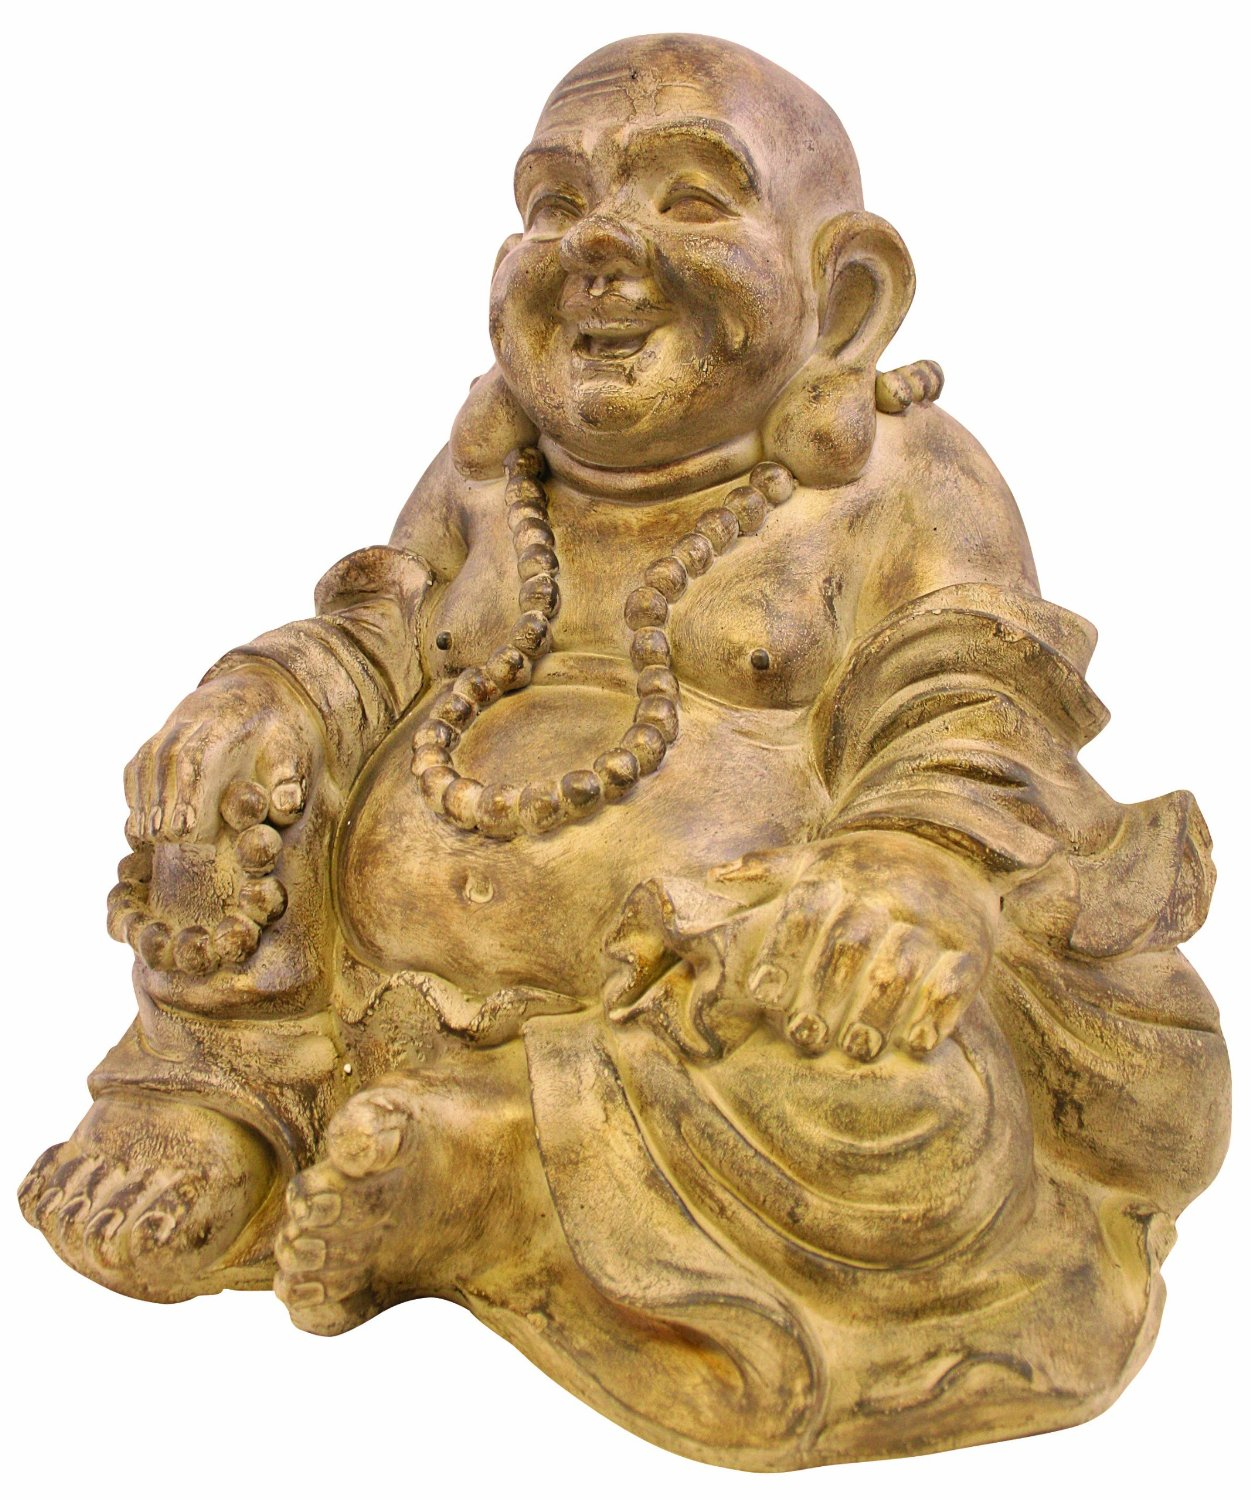 Kelkay 4876 Stonetouch Large Sitting Buddha Statue (Discontinued by Manufacturer)